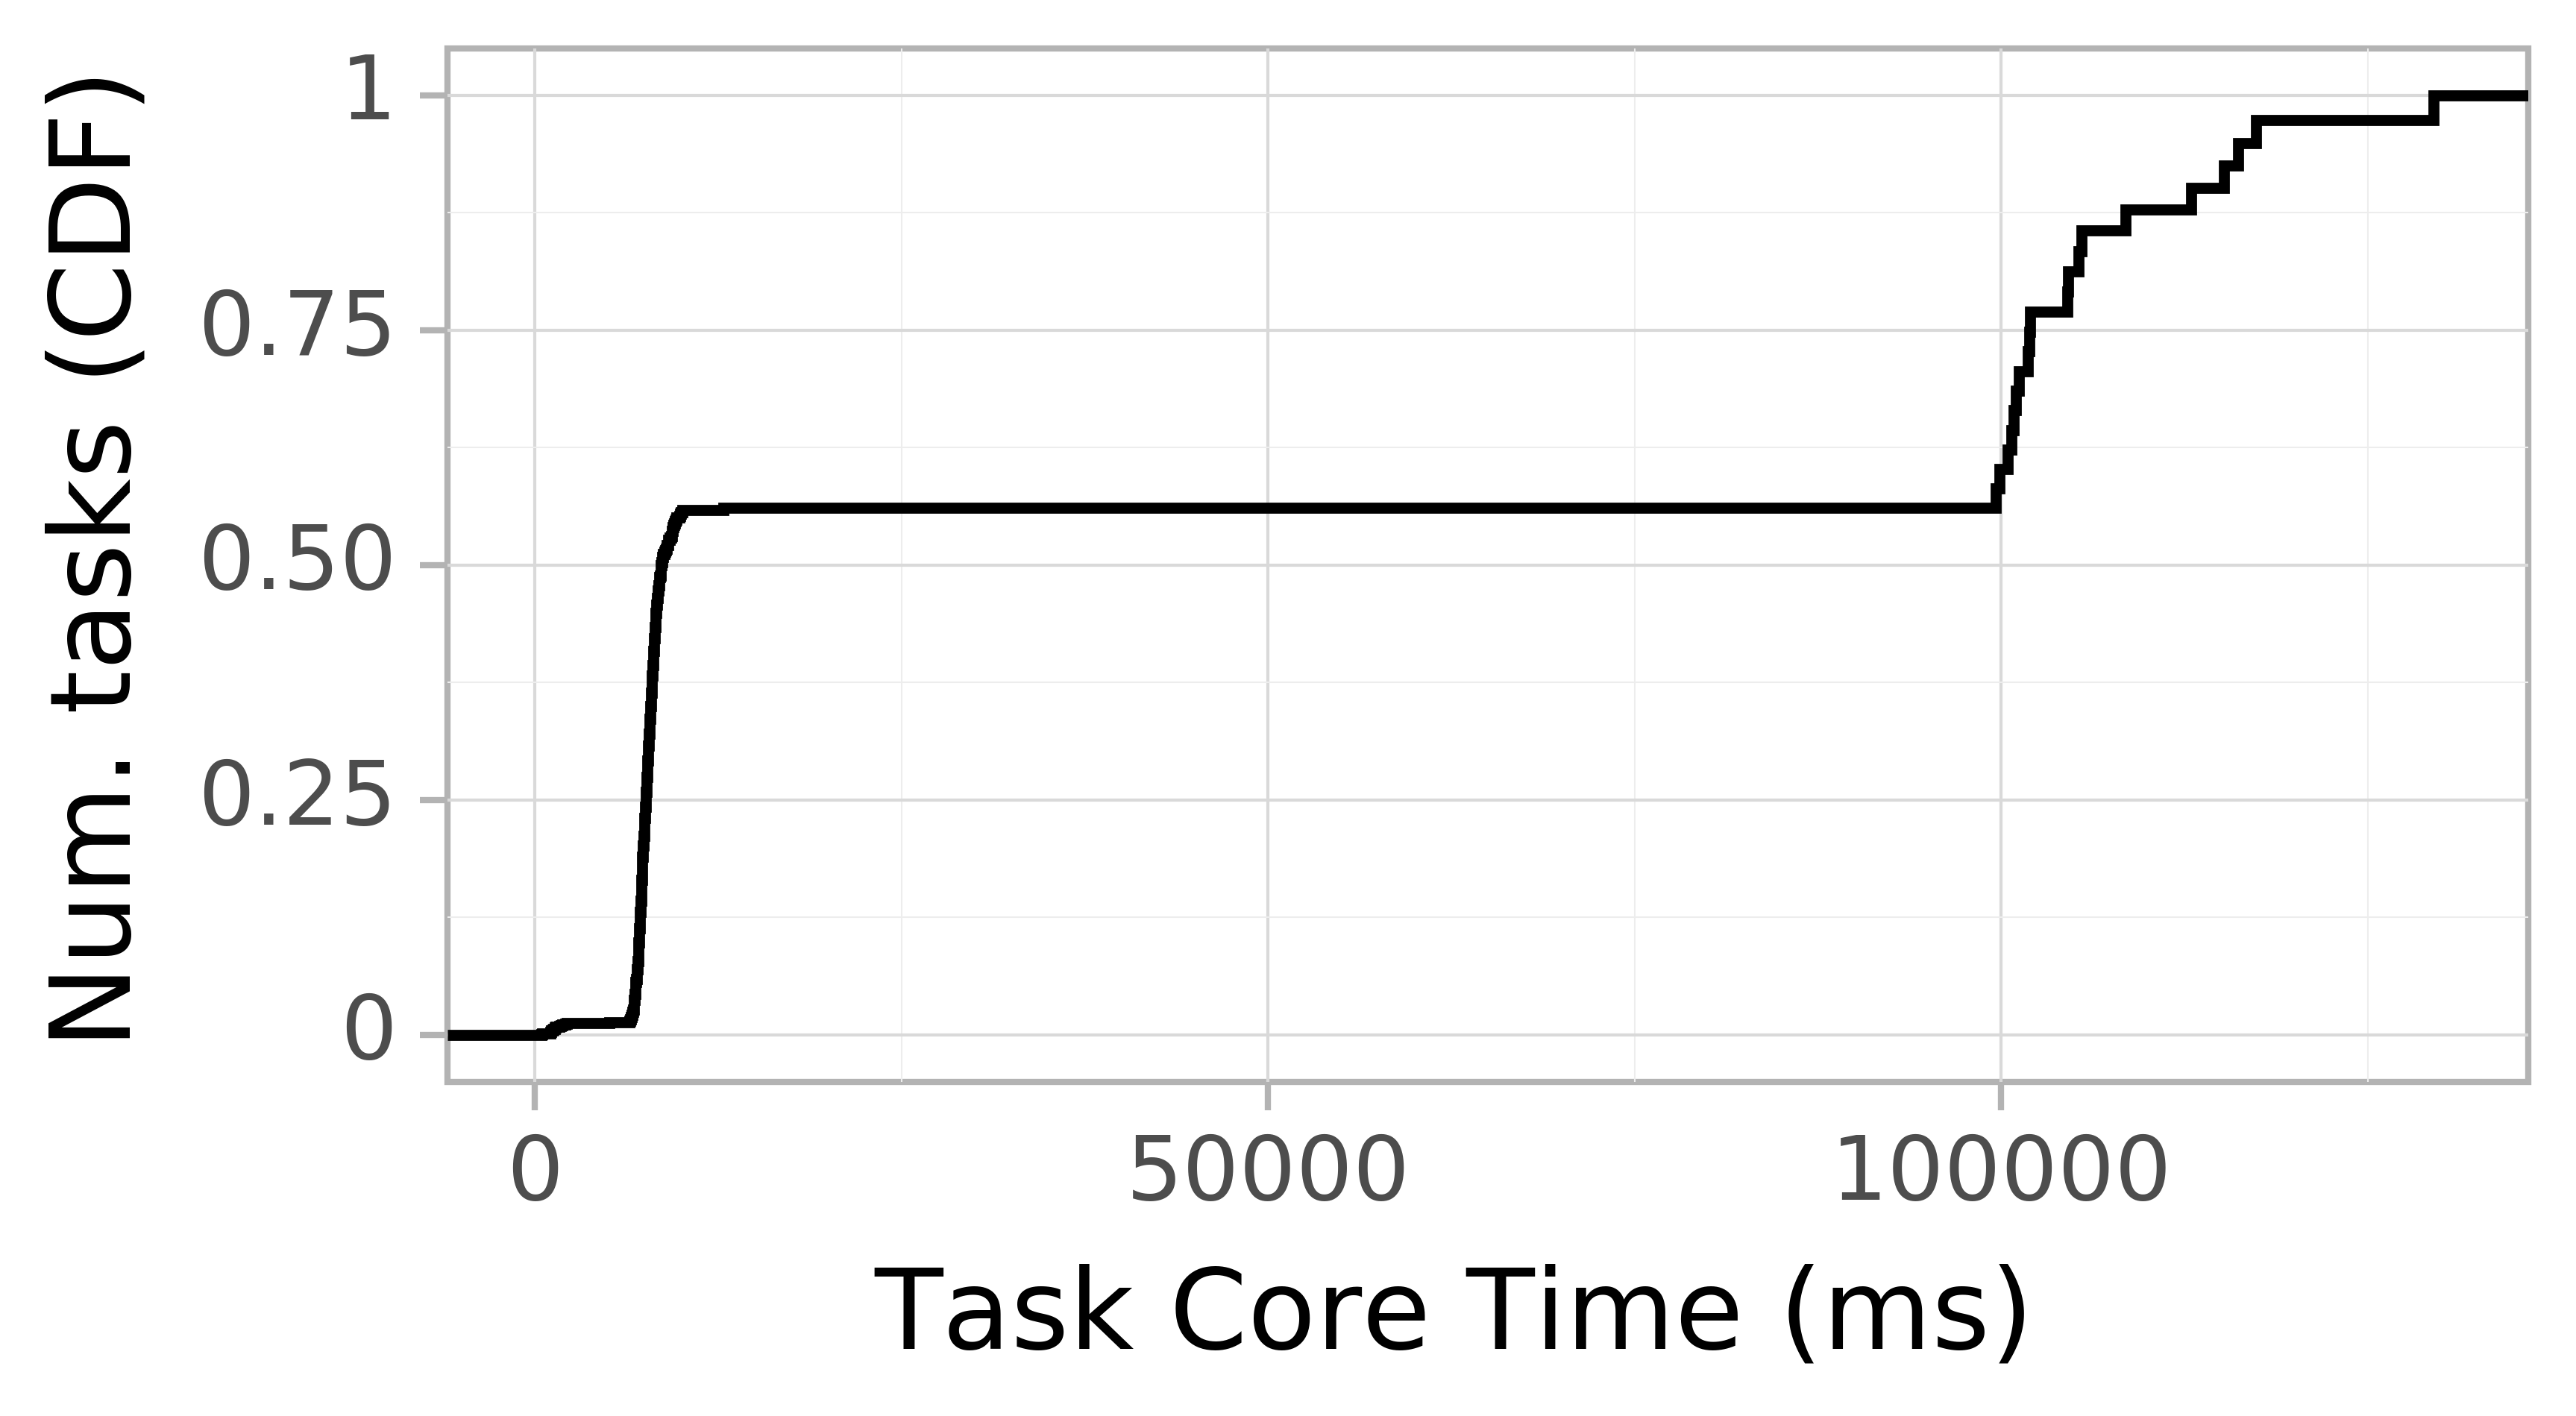 task resource time CDF graph for the askalon-new_ee30 trace.